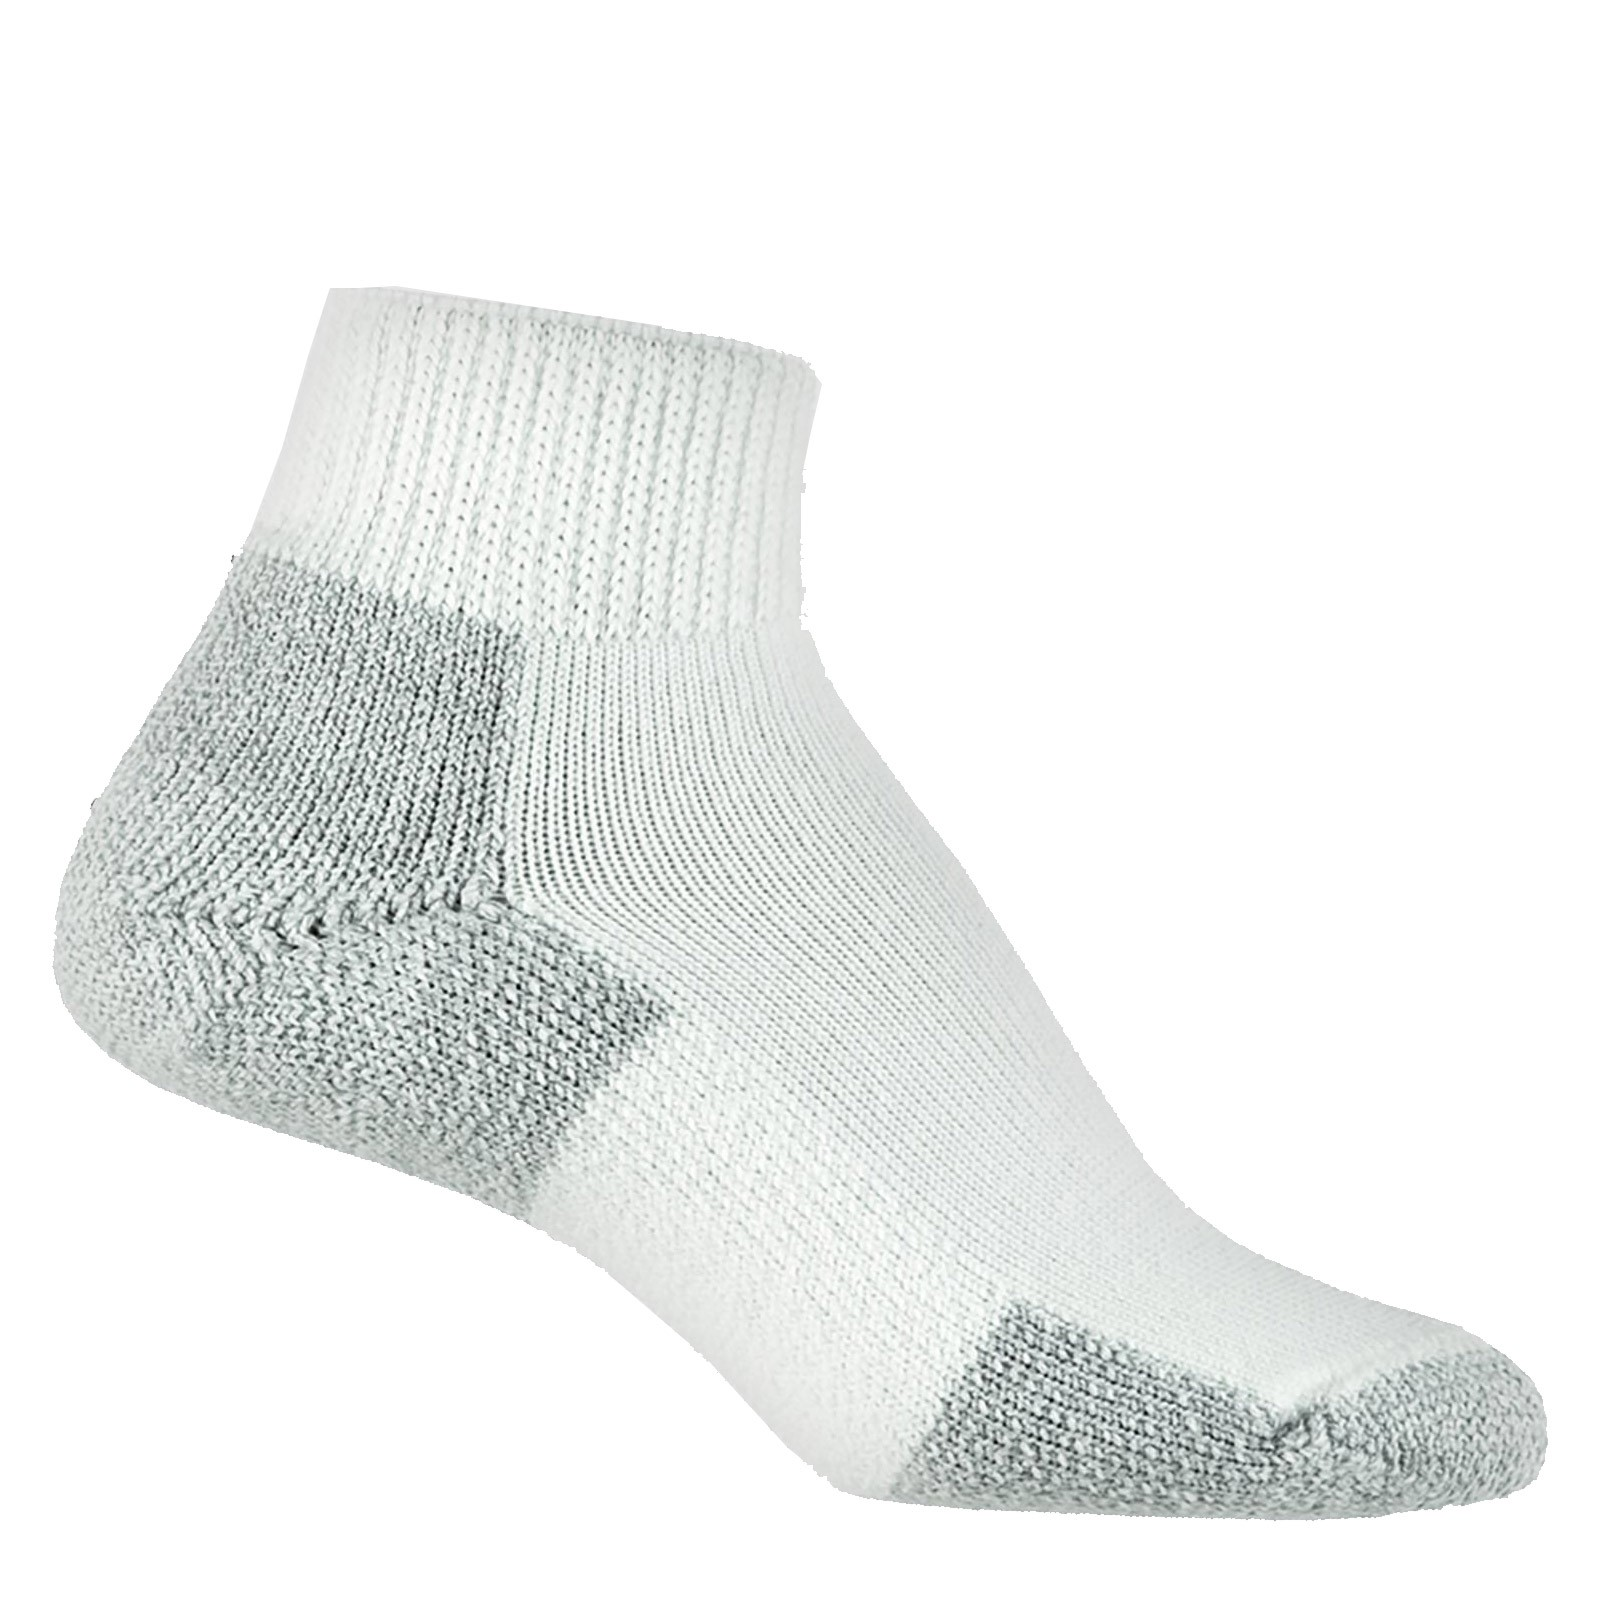 Unisex Thorlo, JMX Running Socks - Medium - 1 Pack